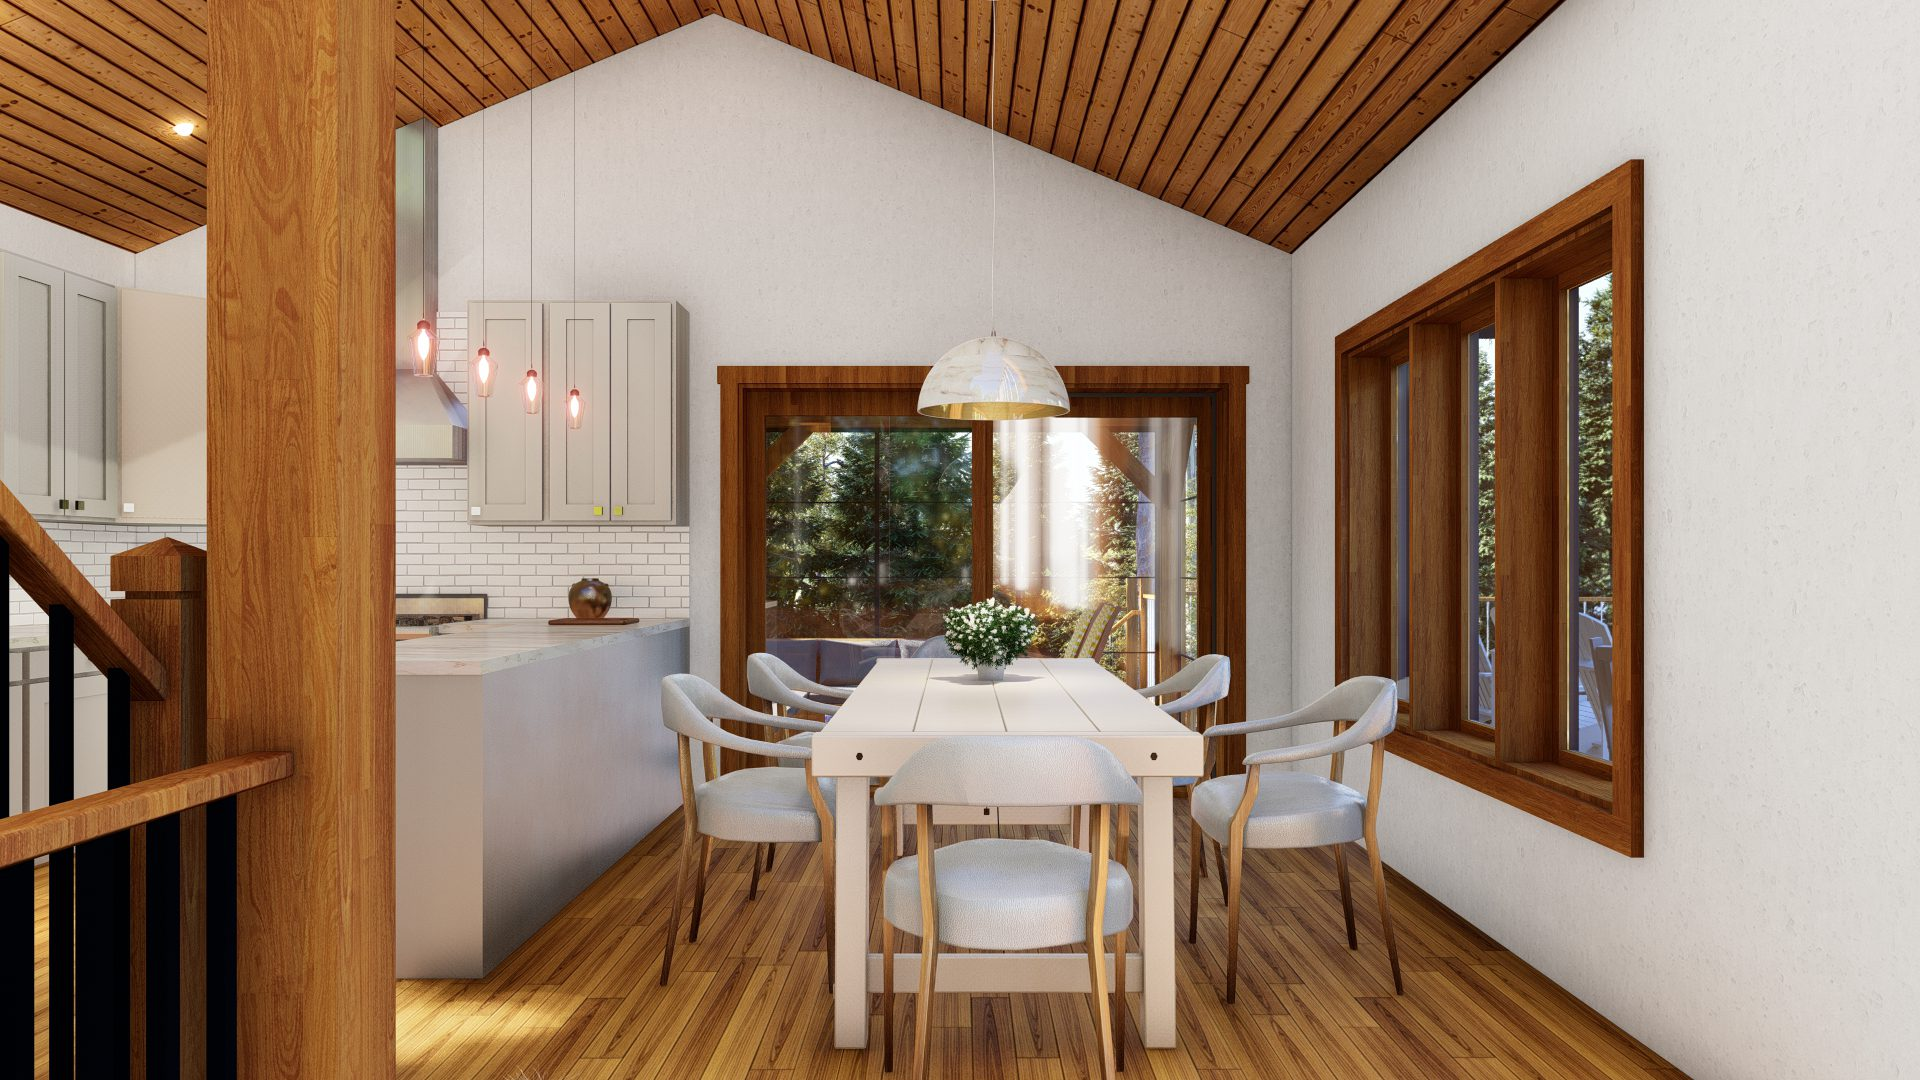 Normerica Timber Frames, House Plans, The Tobermory 3949, Interior, Dining Room, Kitchen